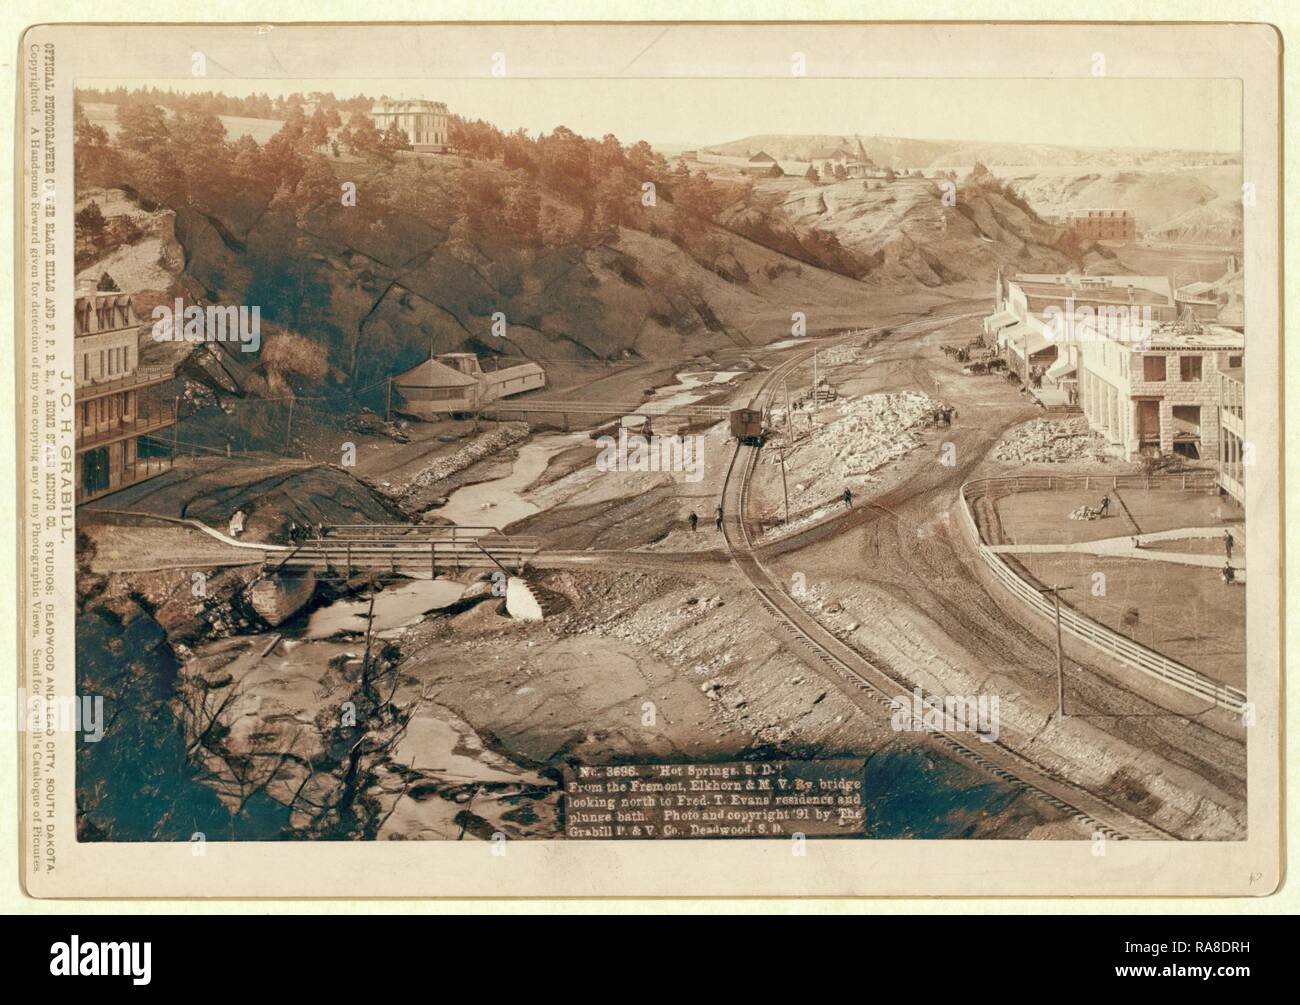 Hot Springs, S.D. From the Fremont, Elkhorn and M.V. Ry. Bridge Looking North to Fred T. Evans Residence and Plunge reimagined - Stock Image